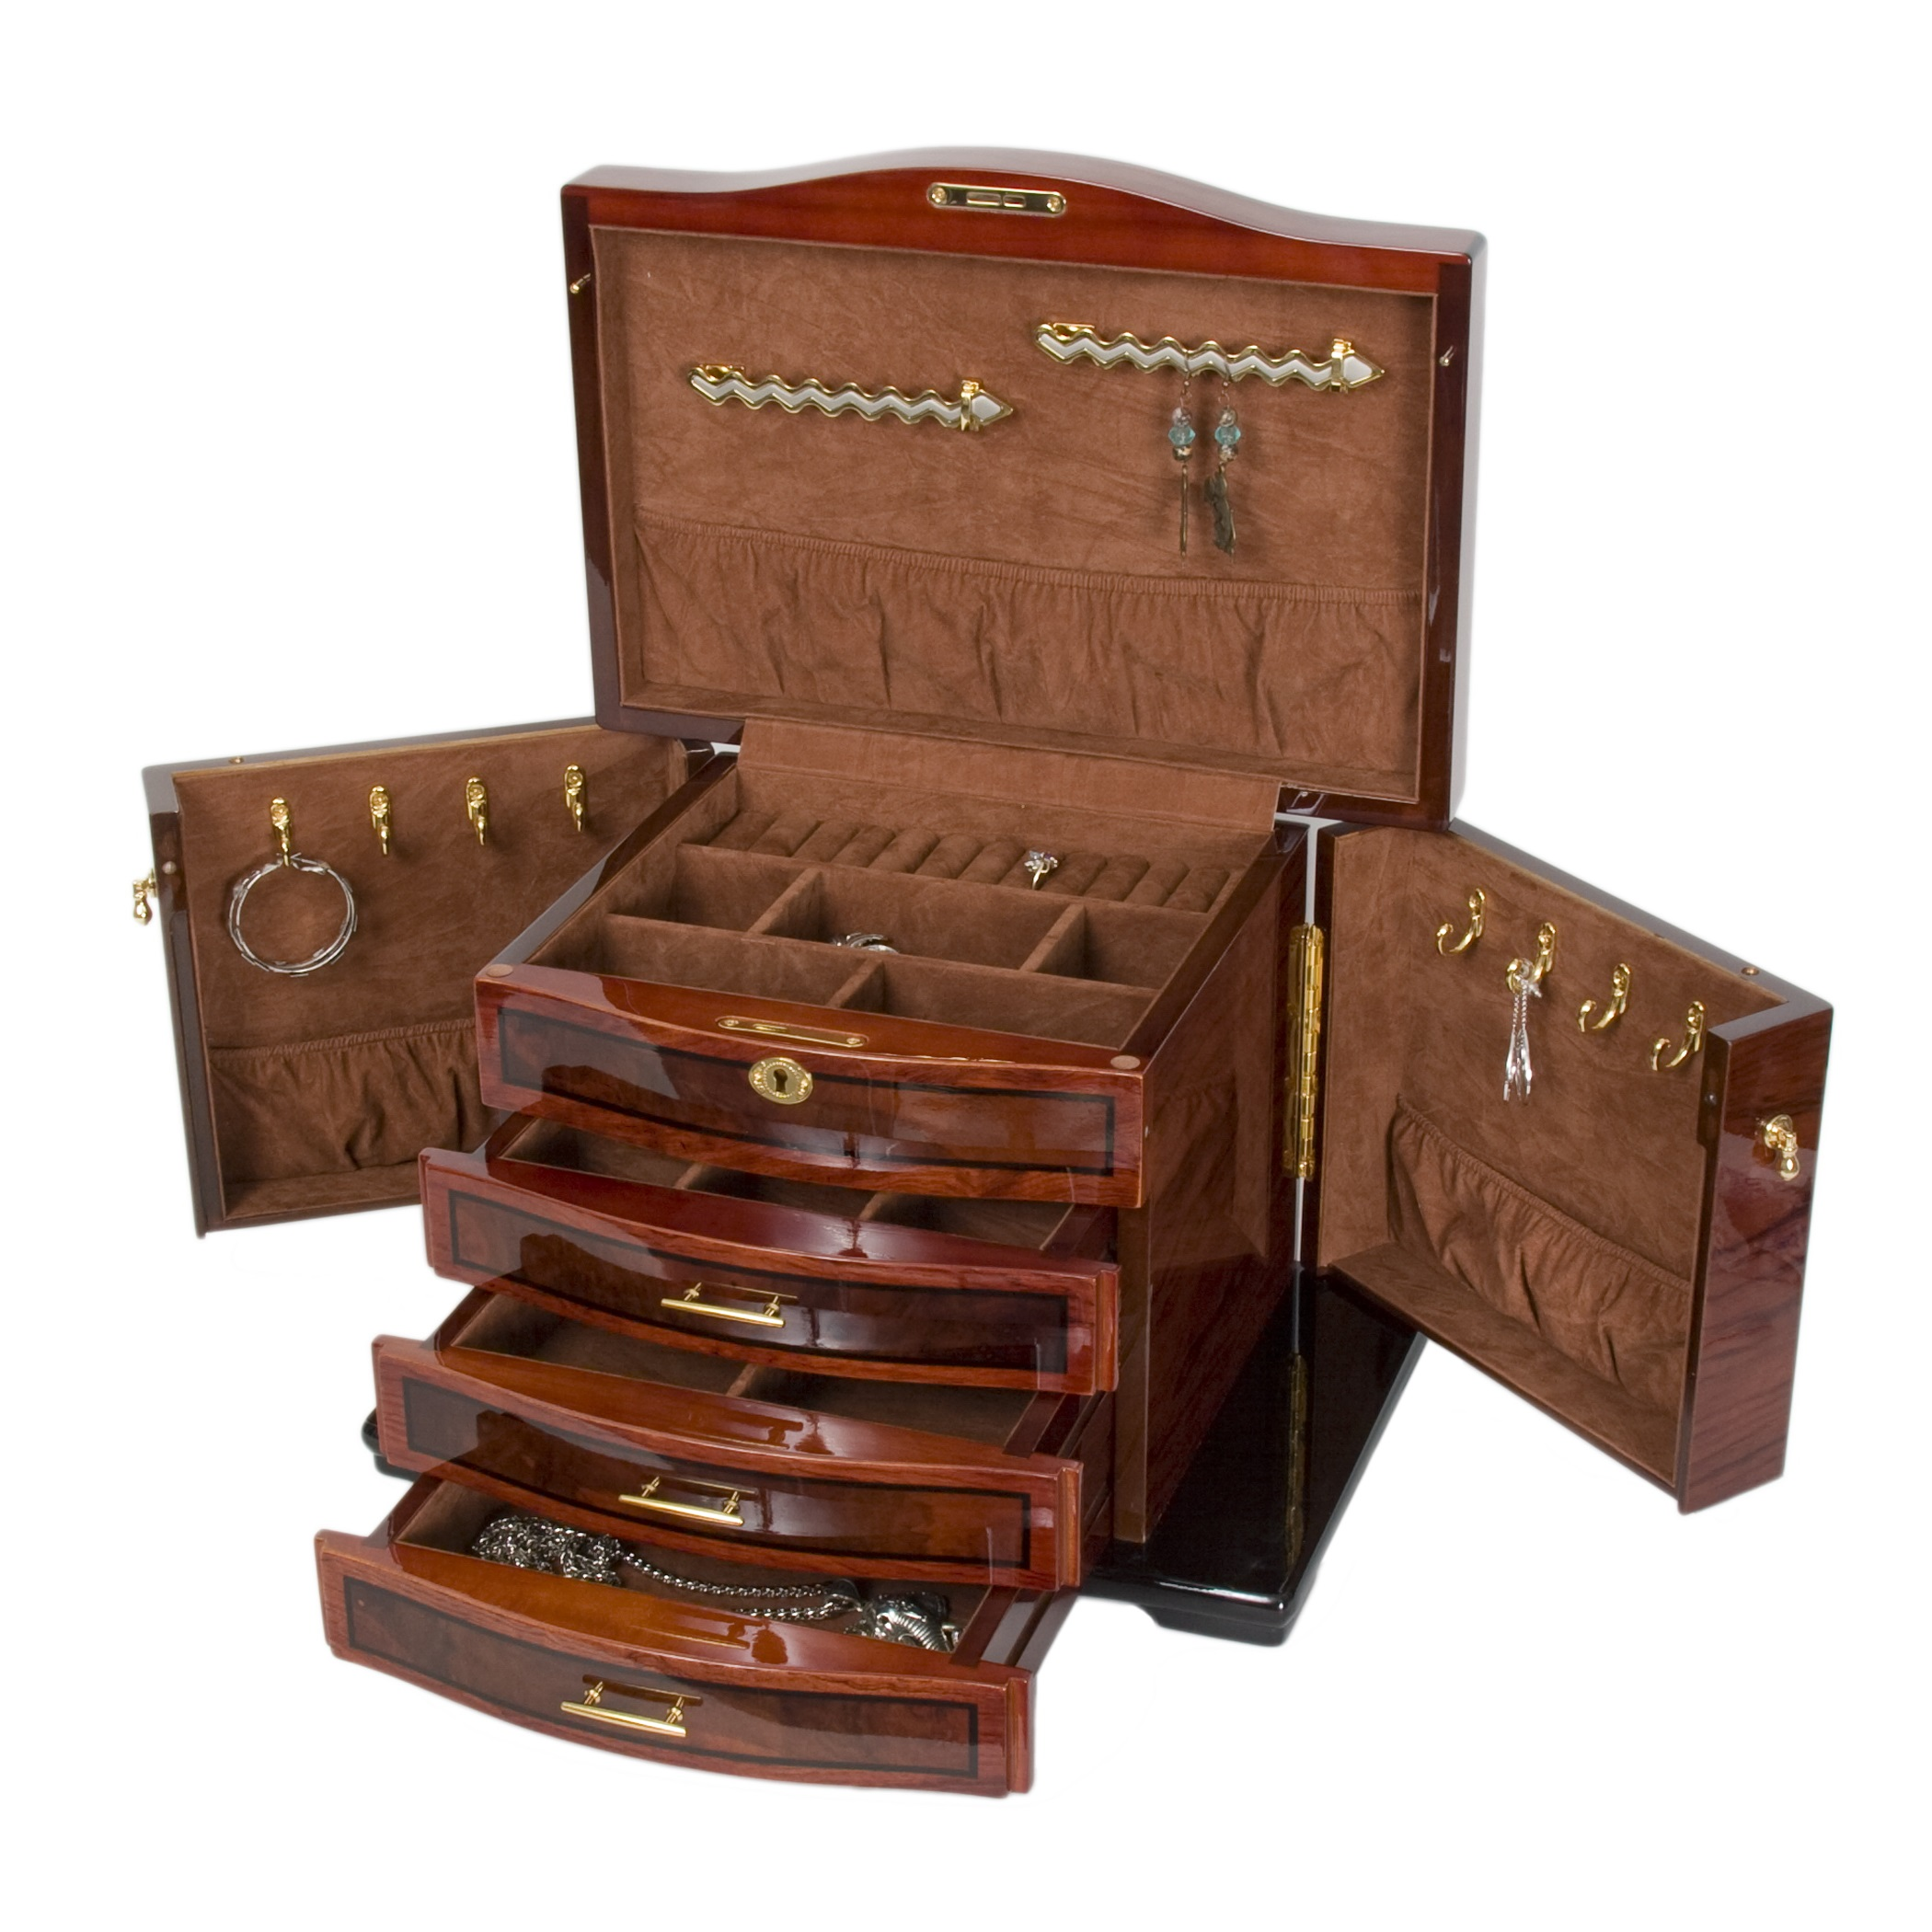 Allurez Burlwood Inlay Jewelry Chest w Necklace Hooks and...